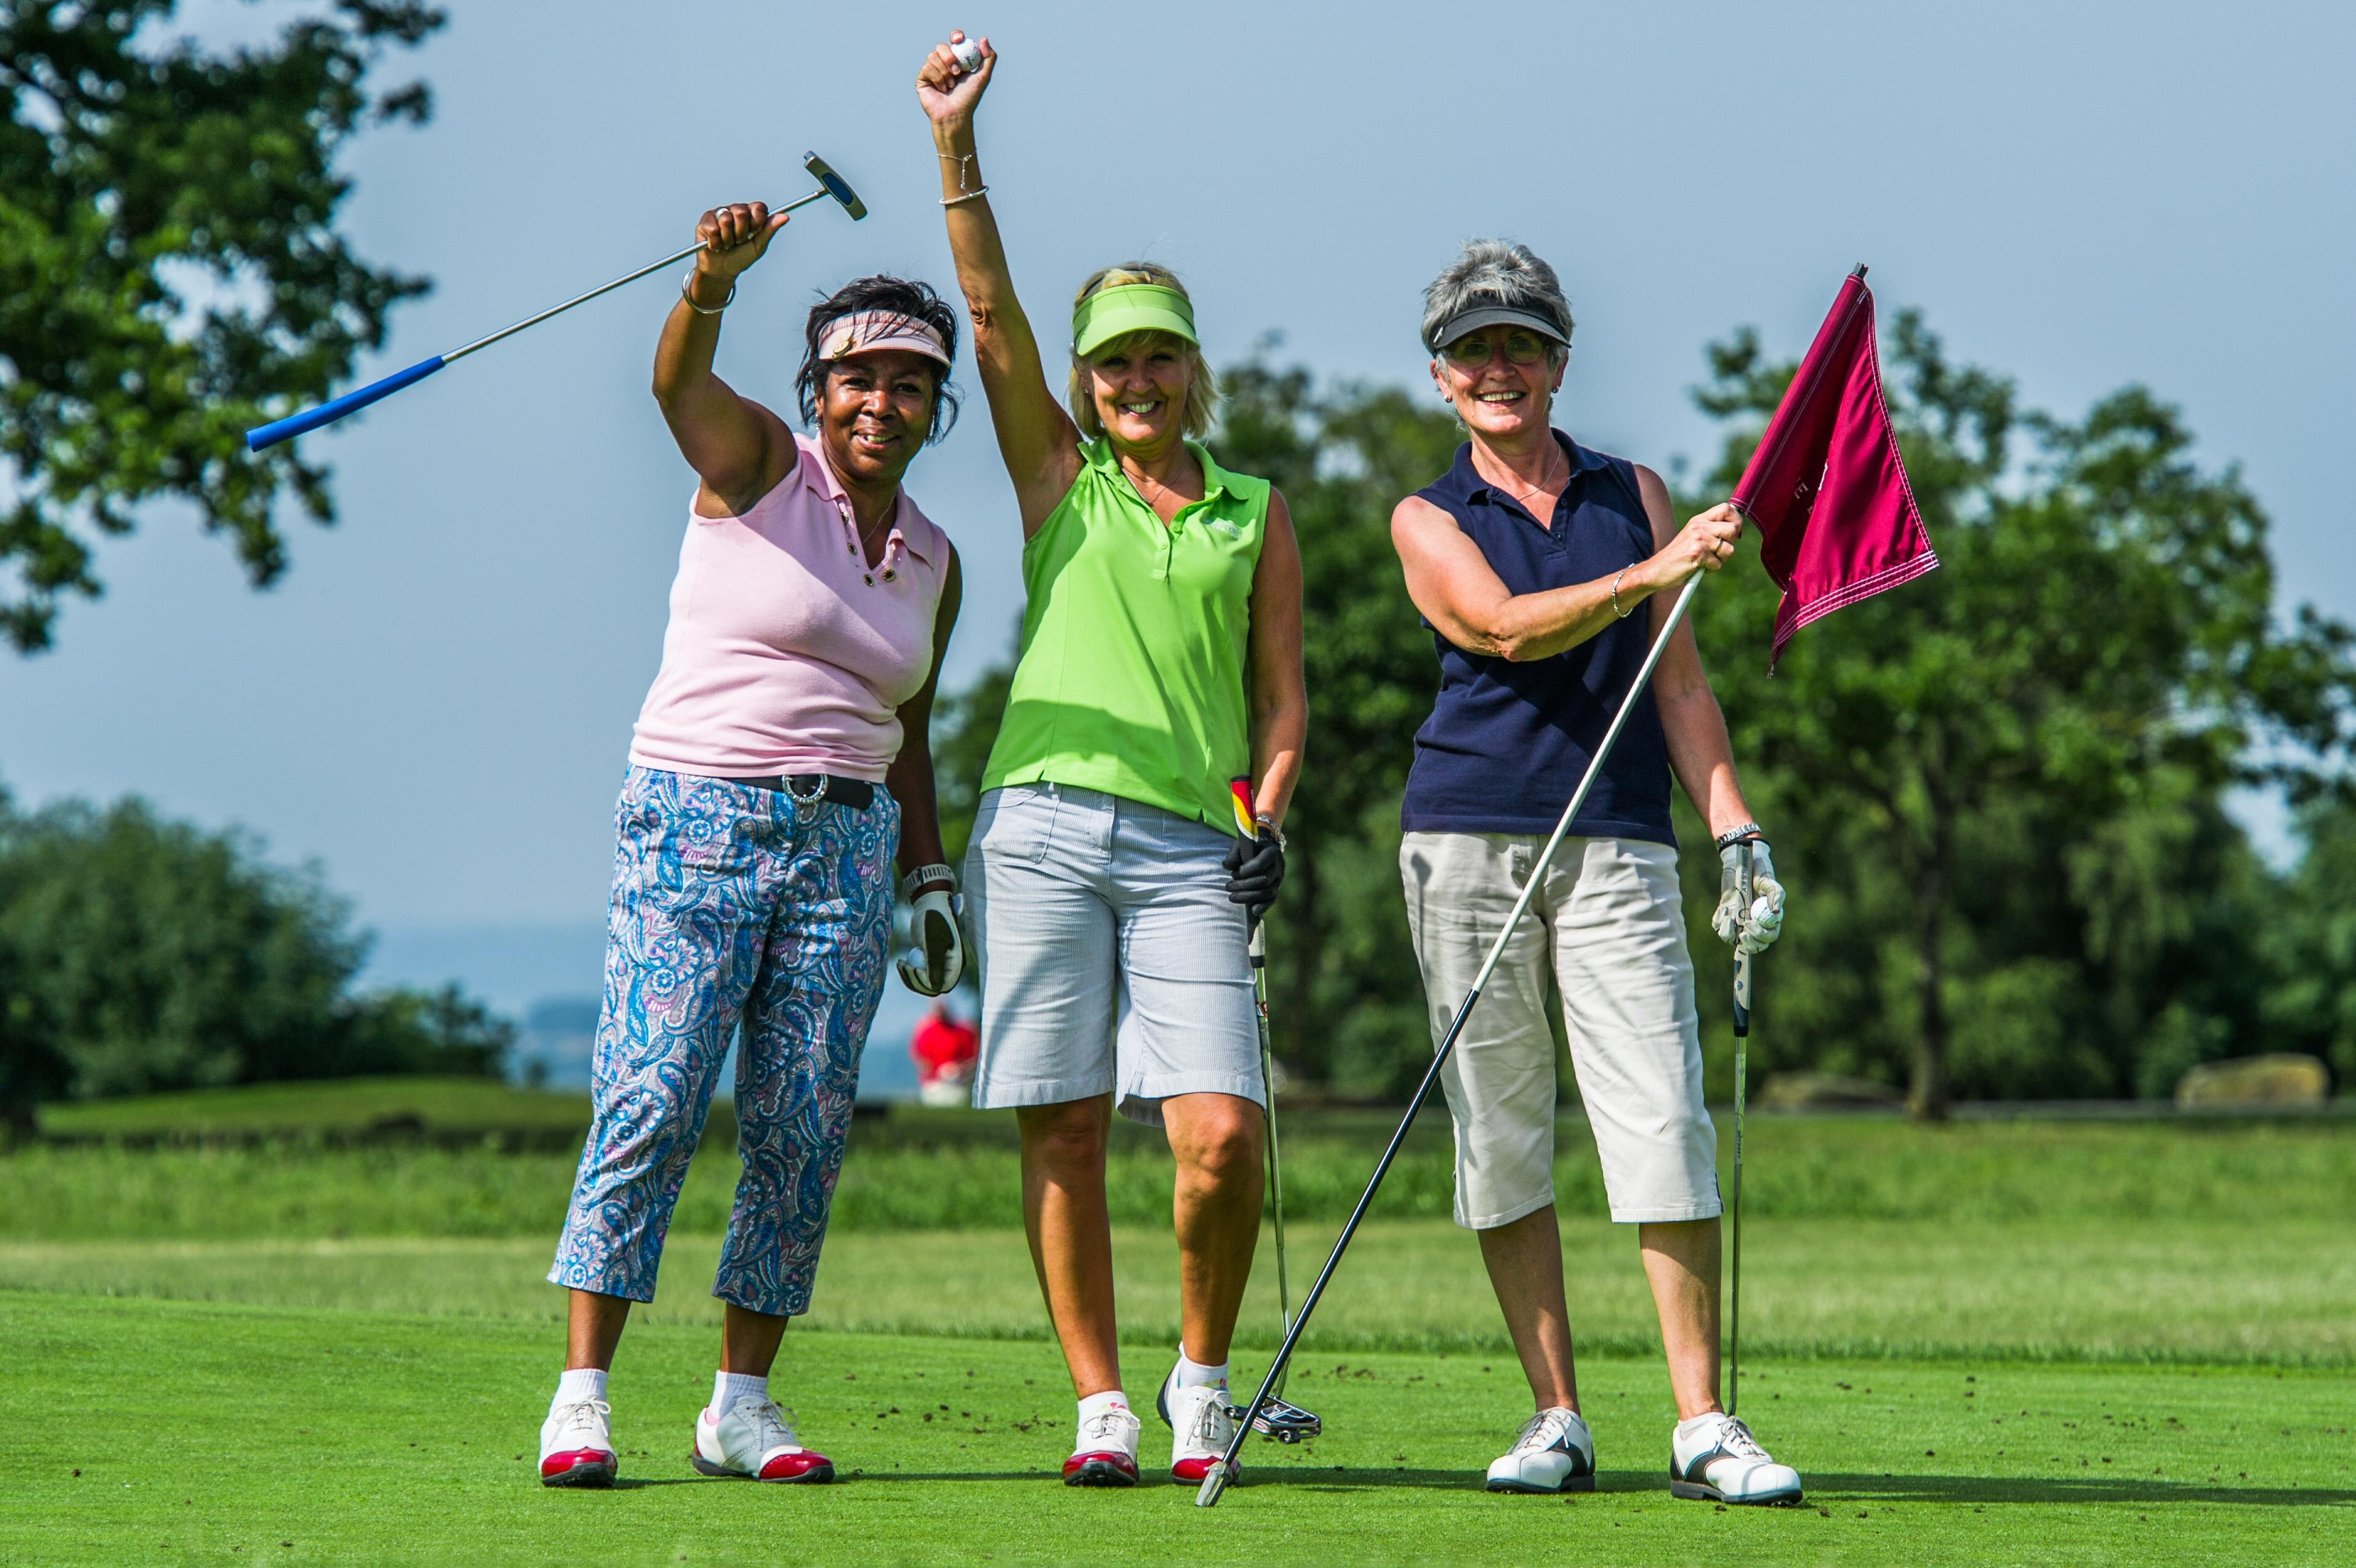 Women's Golf Day at Theodore Wirth Golf Course - Play 9 Holes Afternoon